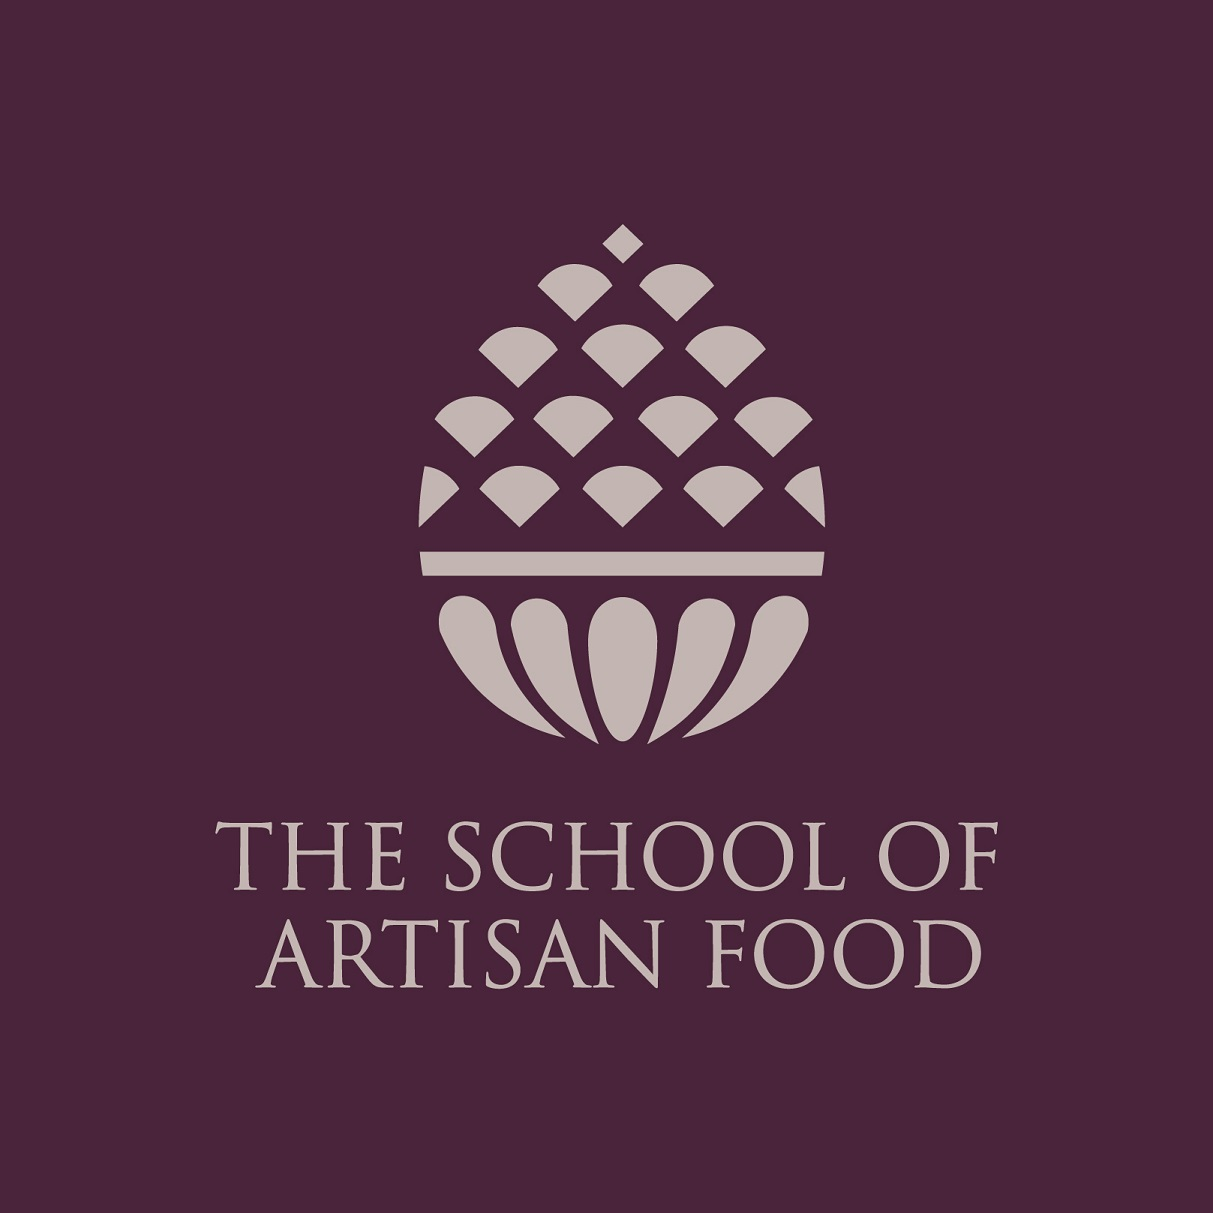 The School of Artisan Food